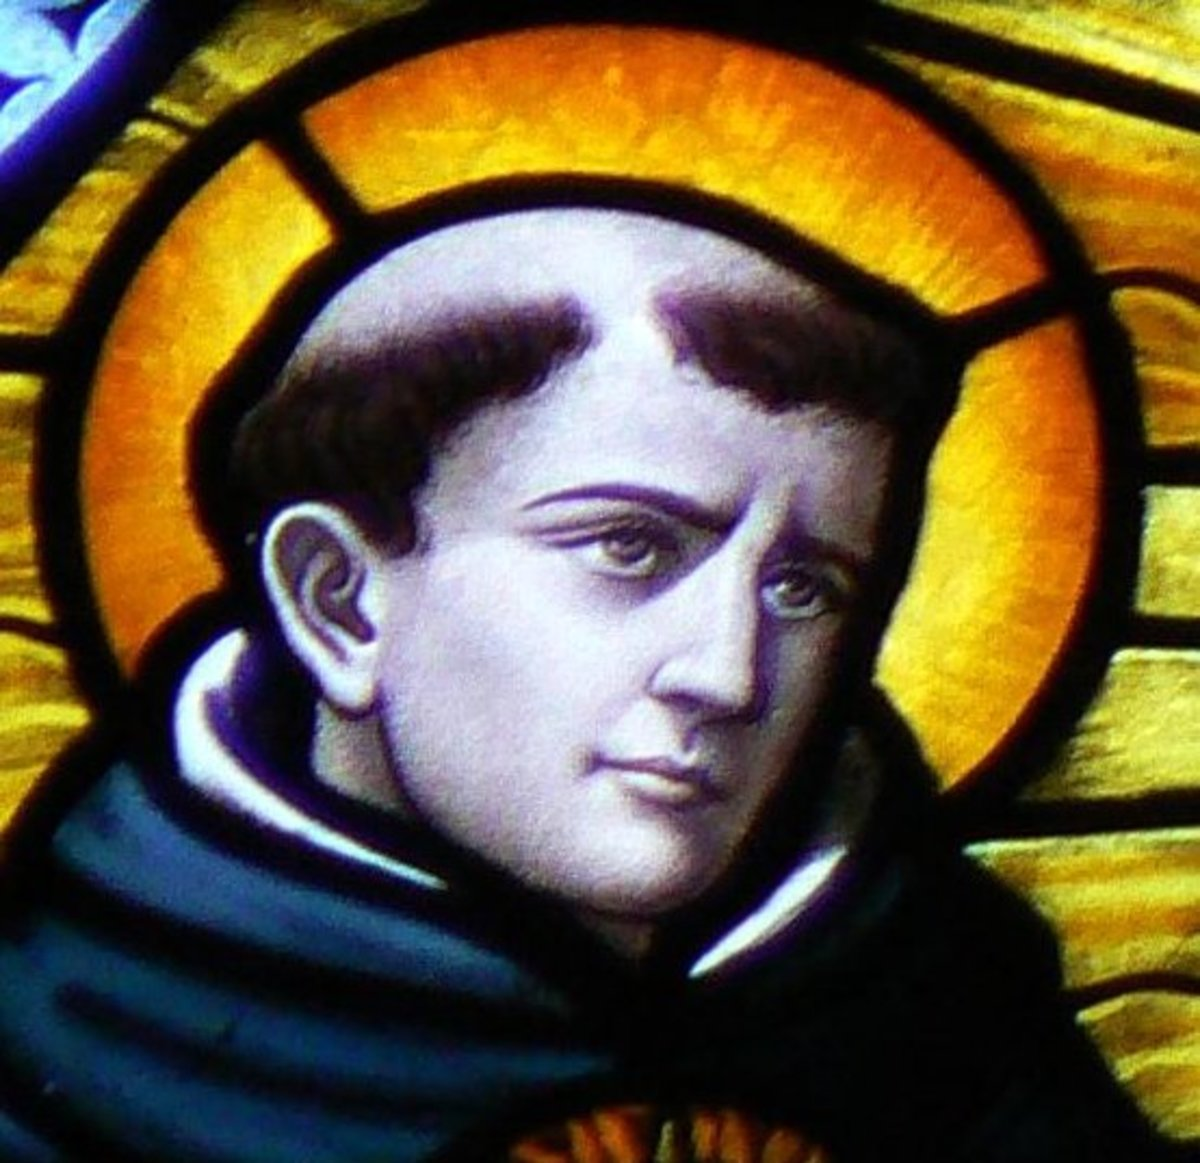 St. Thomas Aquinas was an extremely influential theistic philosopher who concluded there are five divine qualities to the nature of God.